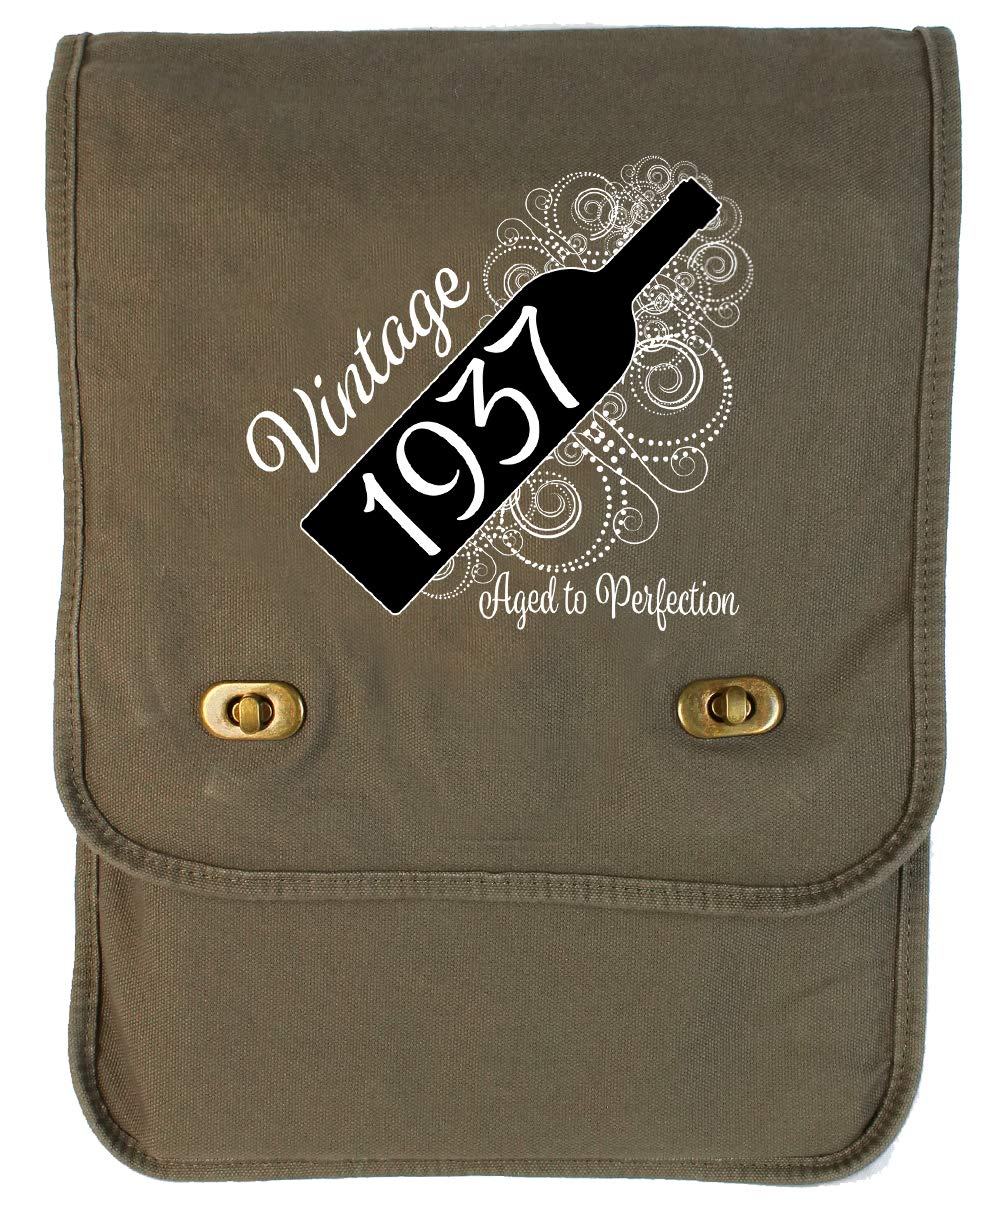 Aged Like a Fine Wine Maroon Brushed Canvas Messenger Bag Tenacitee Born in 1937